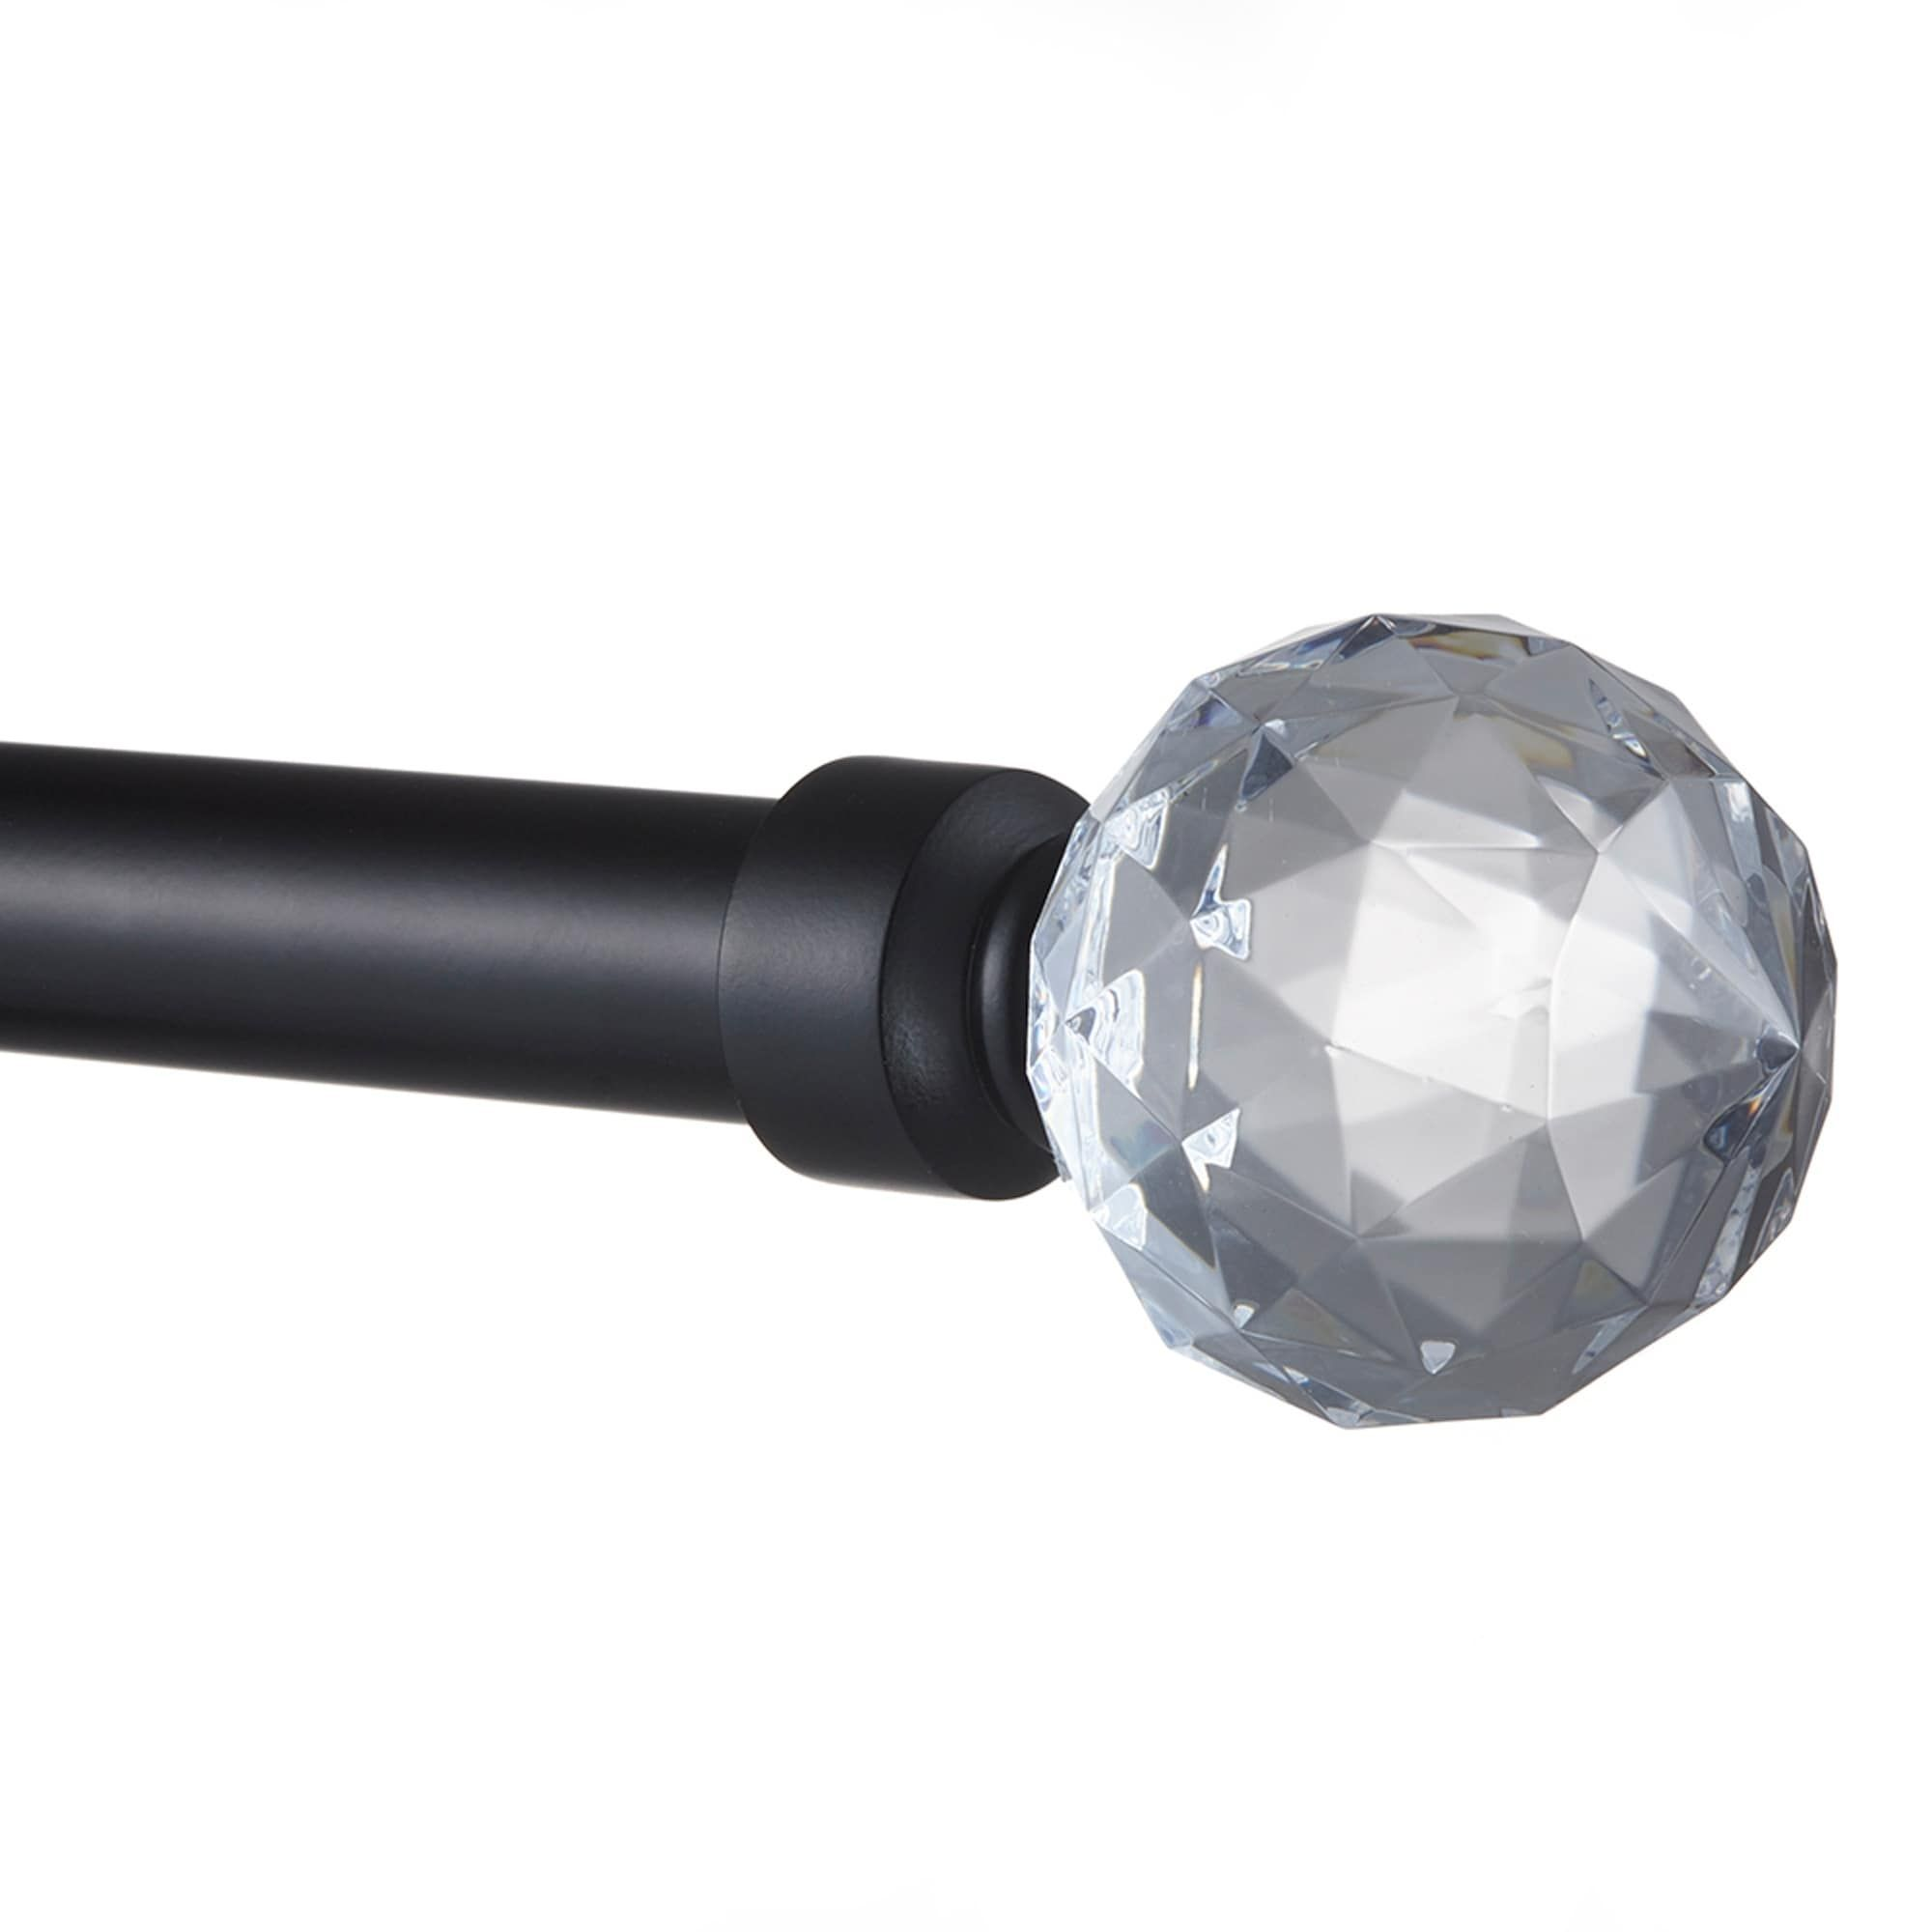 Ati Home Crystal Ball 1 Curtain Rod And Finial Set With Images